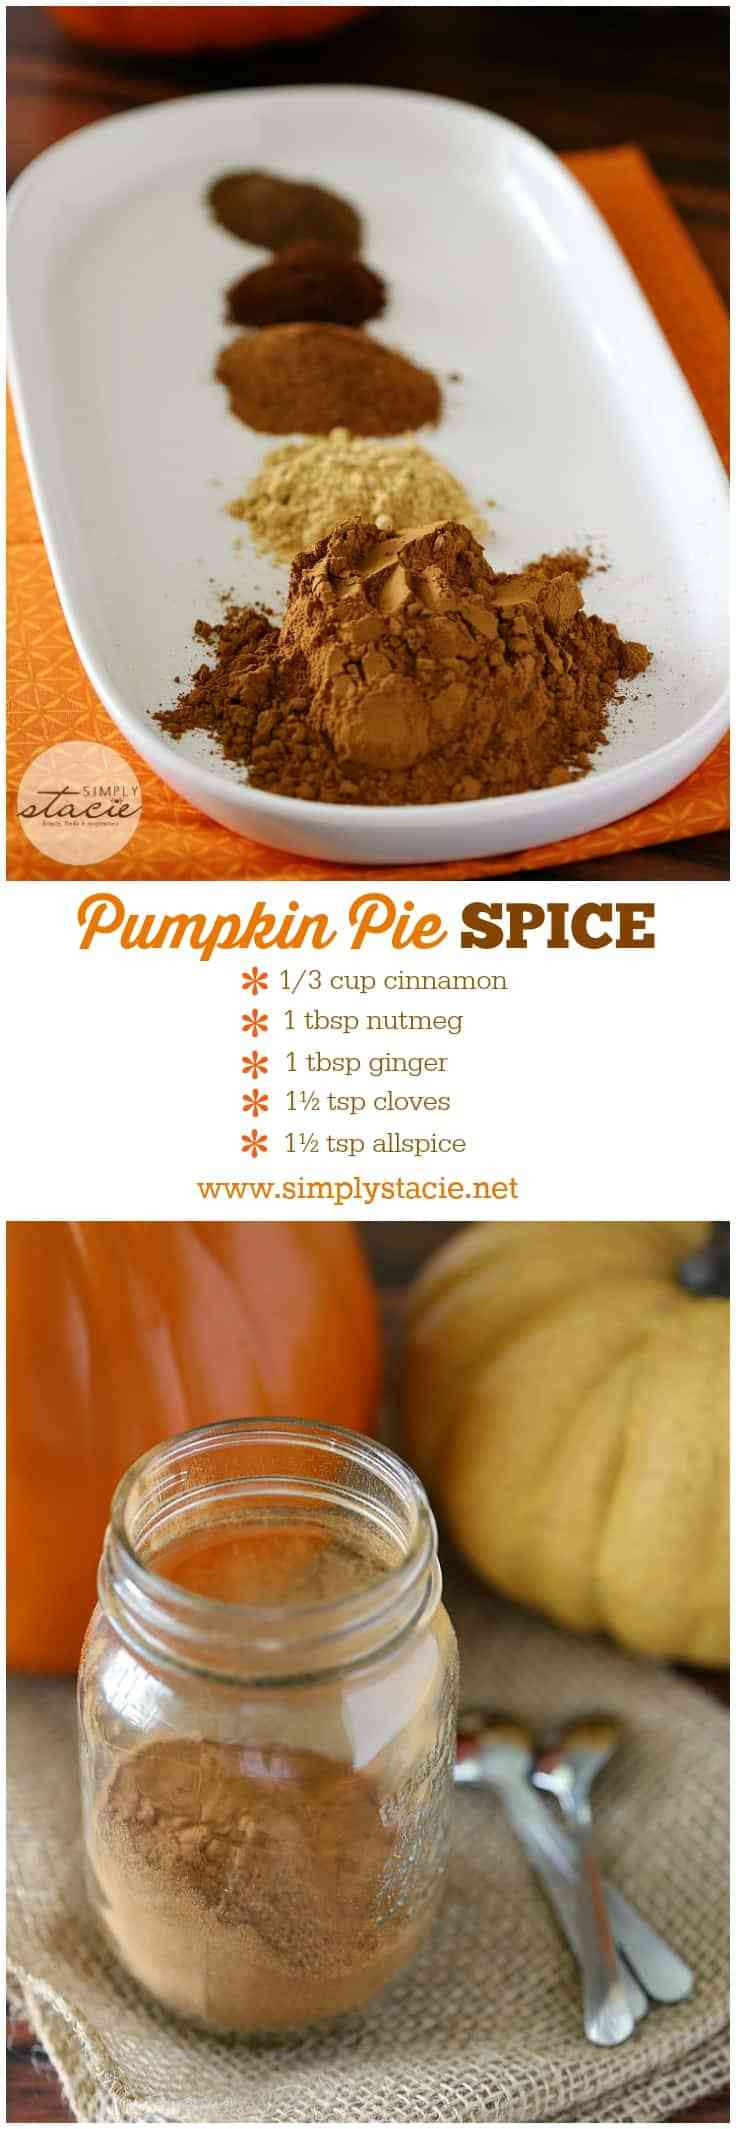 Homemade Pumpkin Pie Spice  Homemade Pumpkin Pie Spice Simply Stacie